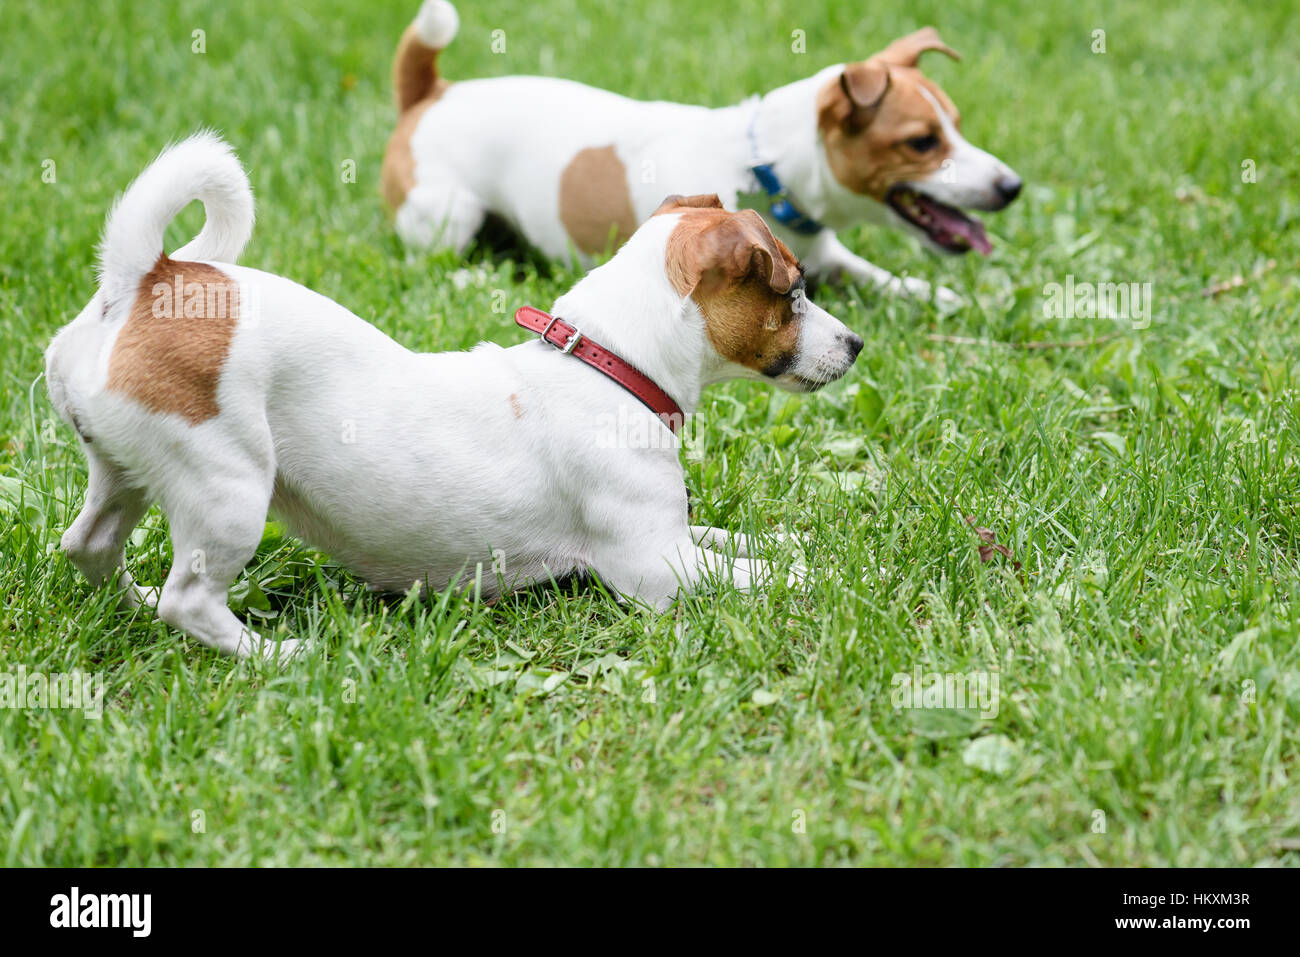 Two obedient dogs lying on grass by handler command - Stock Image